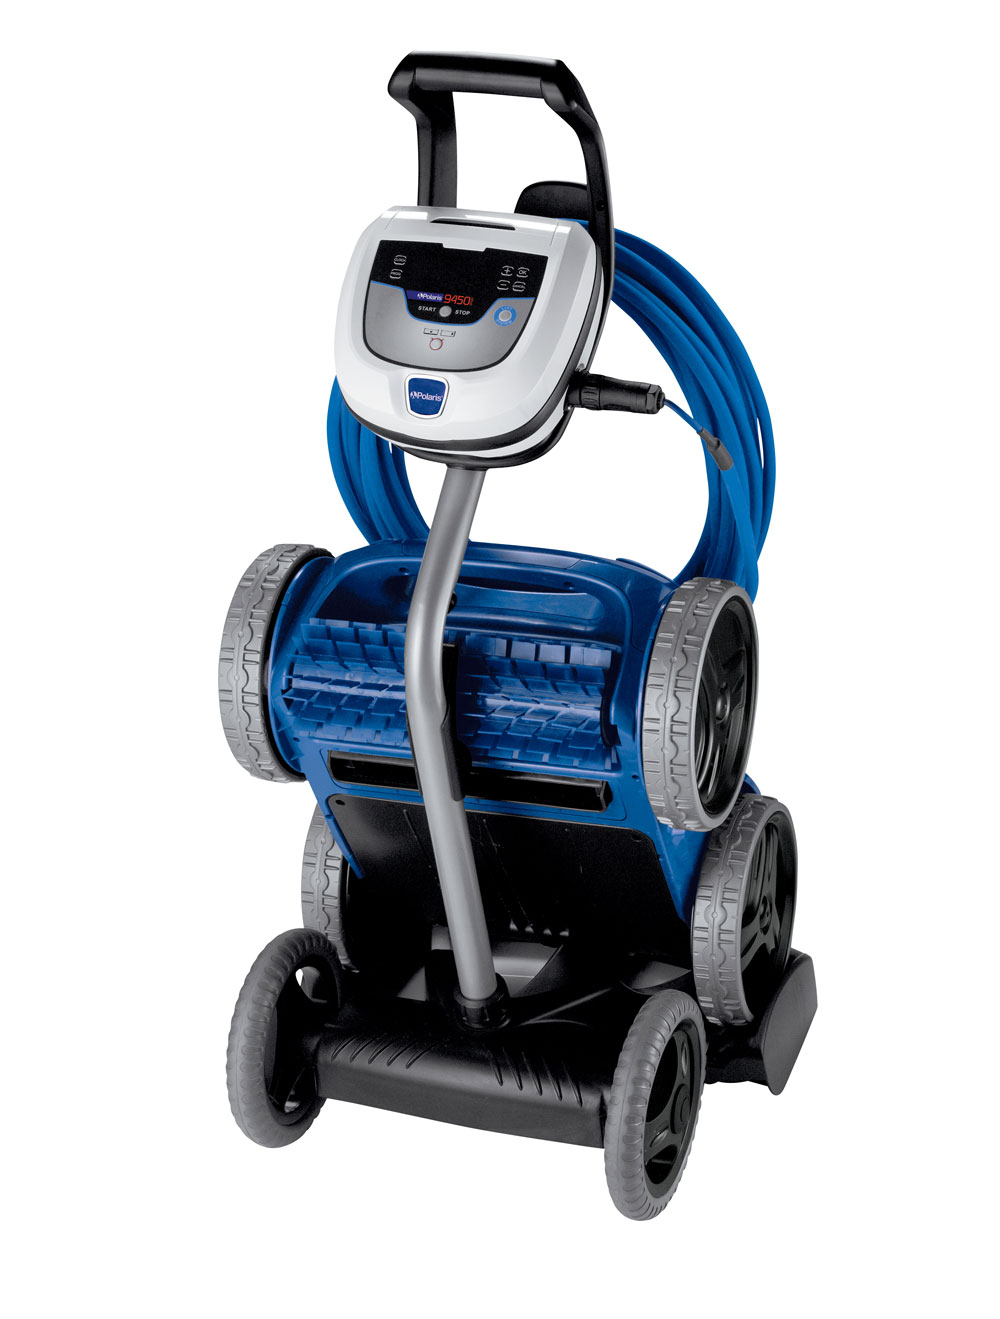 Pool Tips Troubleshooting Reviews Polaris 9450 Sport Robotic Pool Cleaner Review